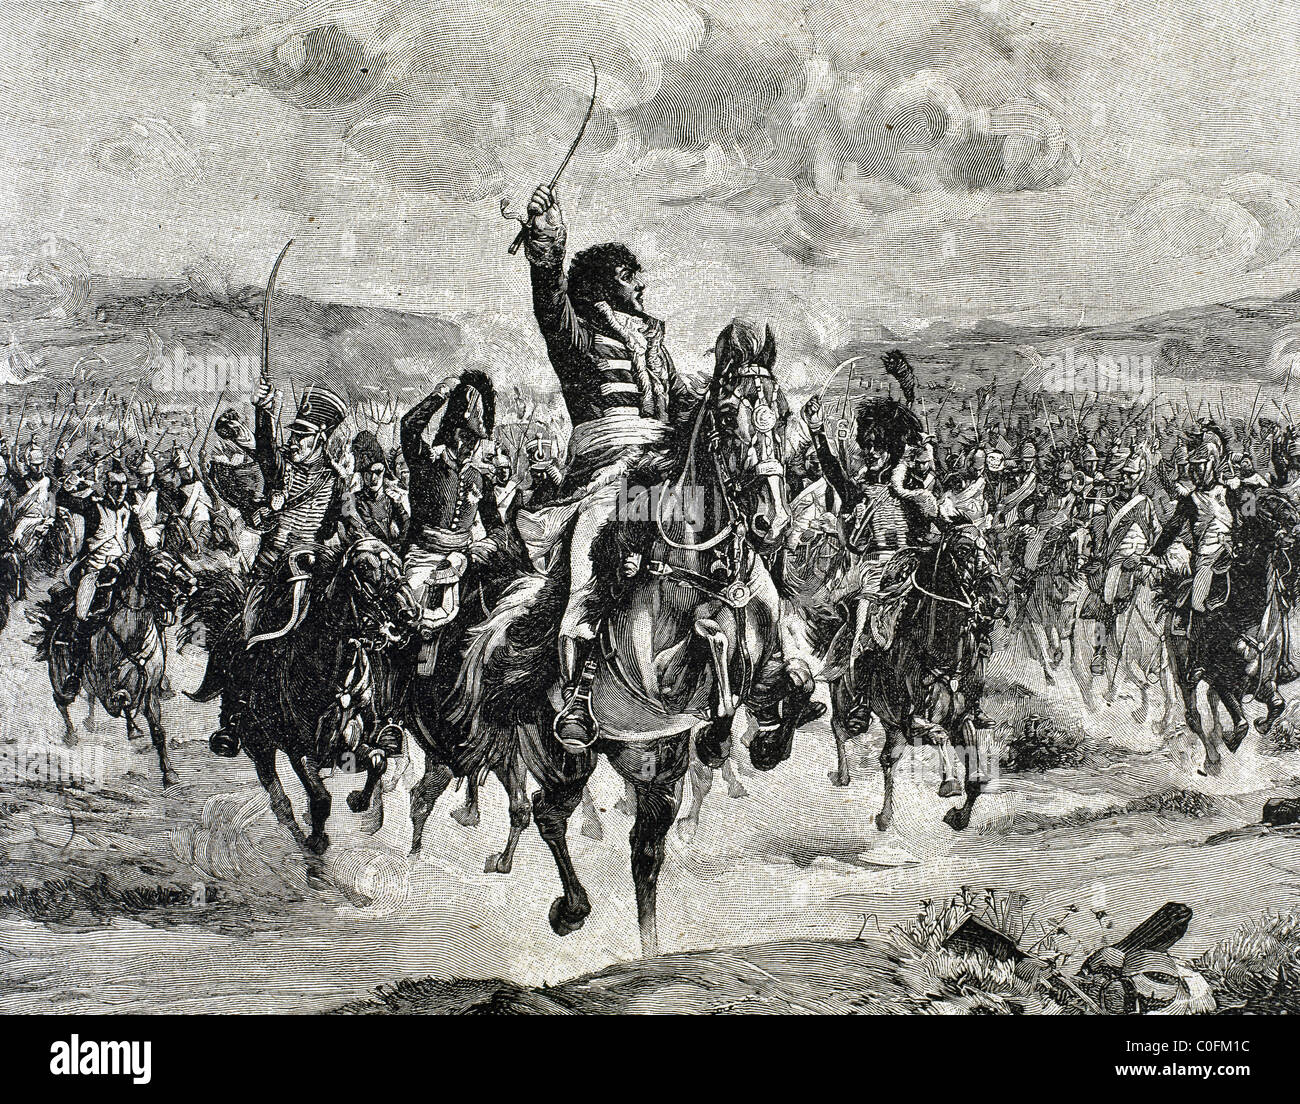 Marshal Murat leads a charge at the Battle of Jena, 14 October 1806. - Stock Image